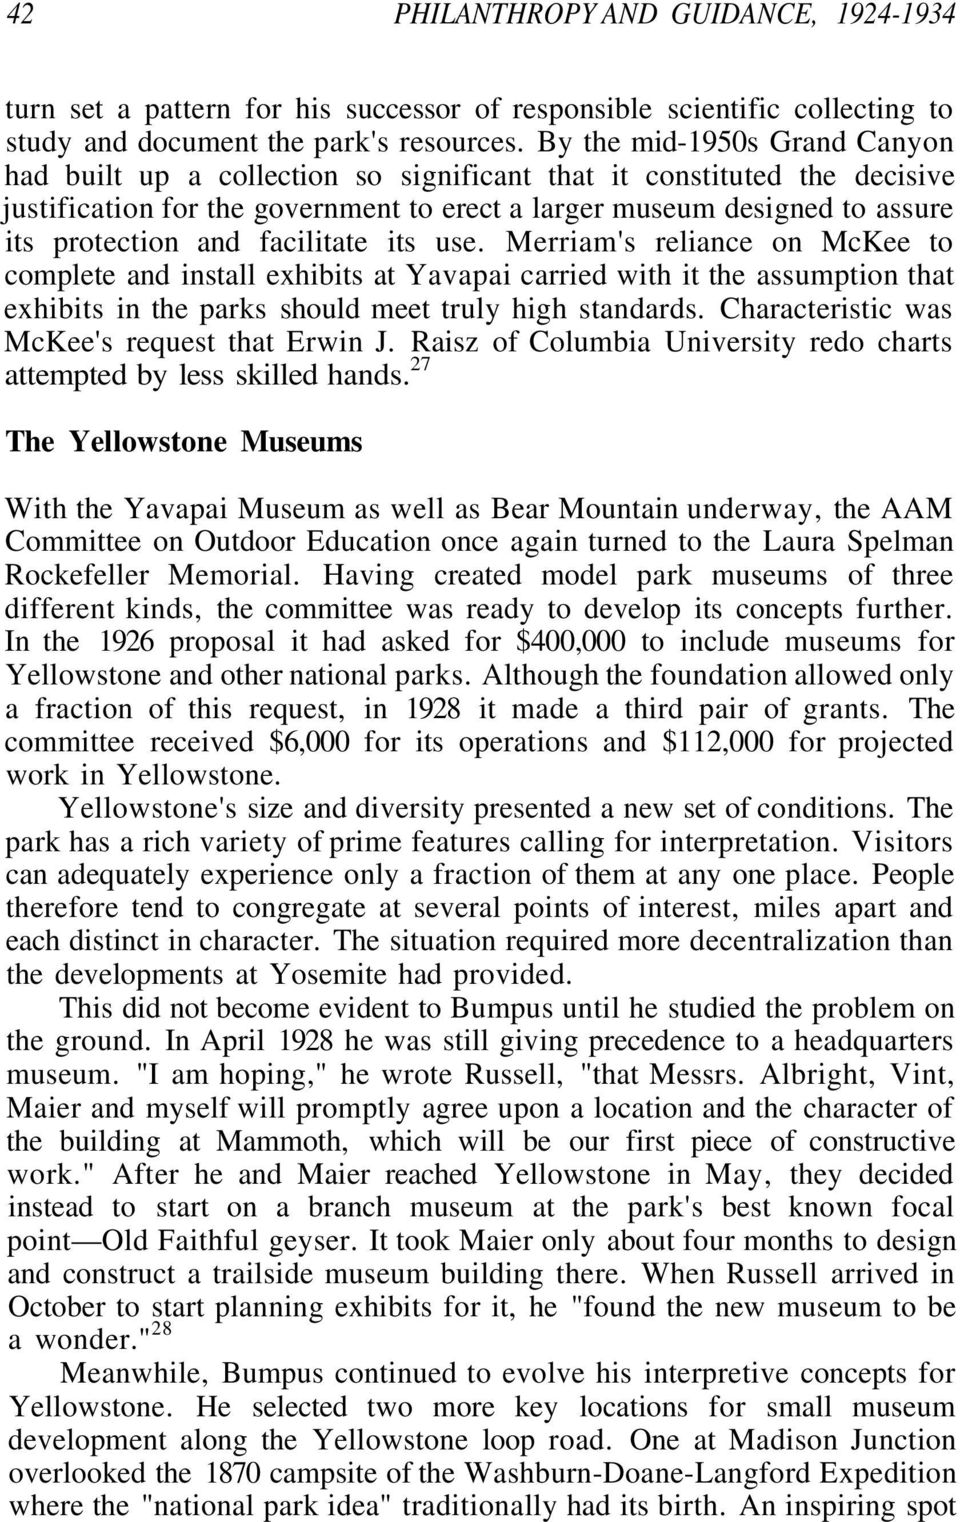 facilitate its use. Merriam's reliance on McKee to complete and install exhibits at Yavapai carried with it the assumption that exhibits in the parks should meet truly high standards.